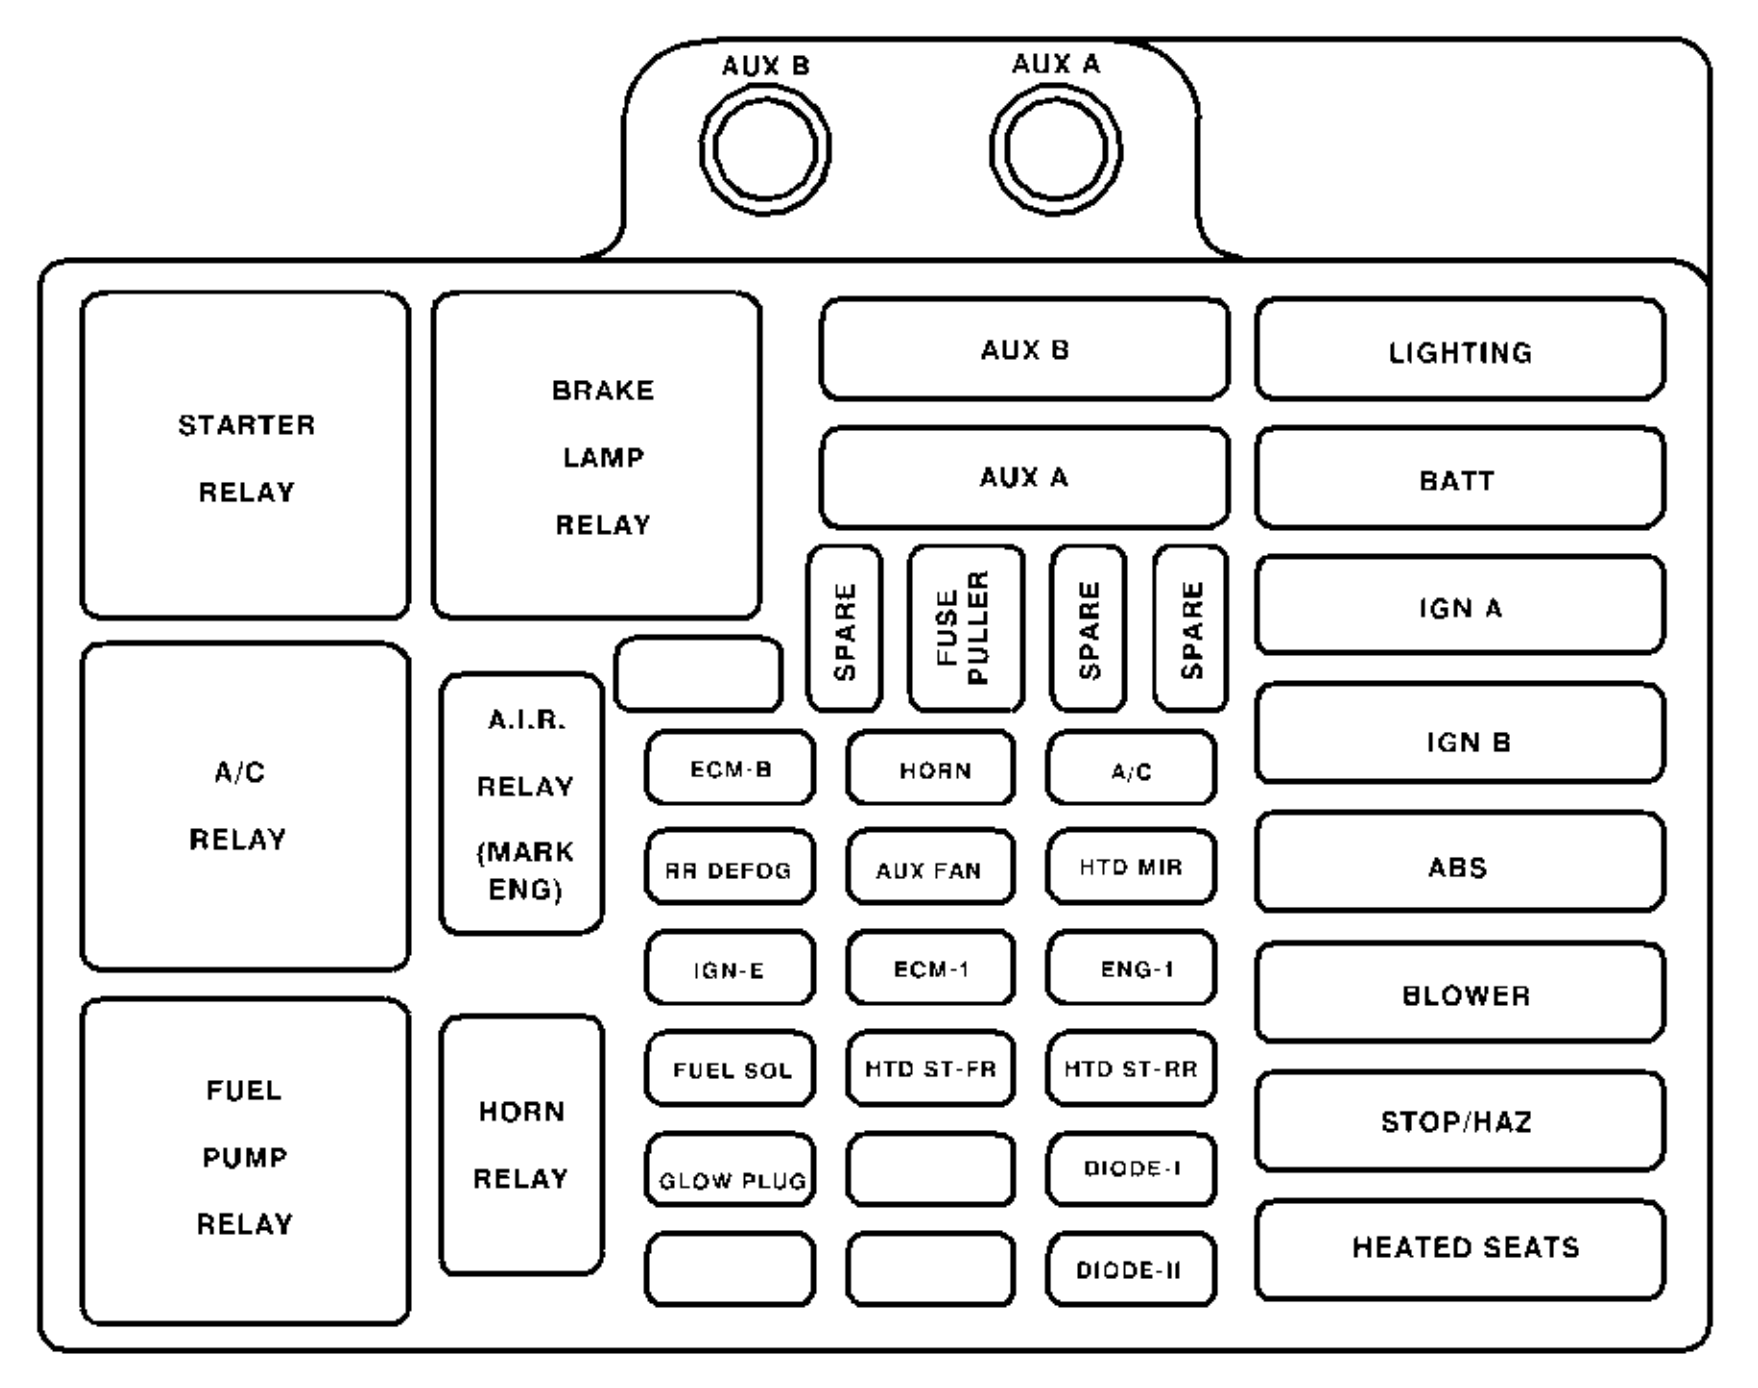 1999 Chevy Truck Fuse Box Another Blog About Wiring Diagram \u2022 1999 Chevy  Silverado 1500 Fuse Box Diagram 1999 Silverado Fuse Box